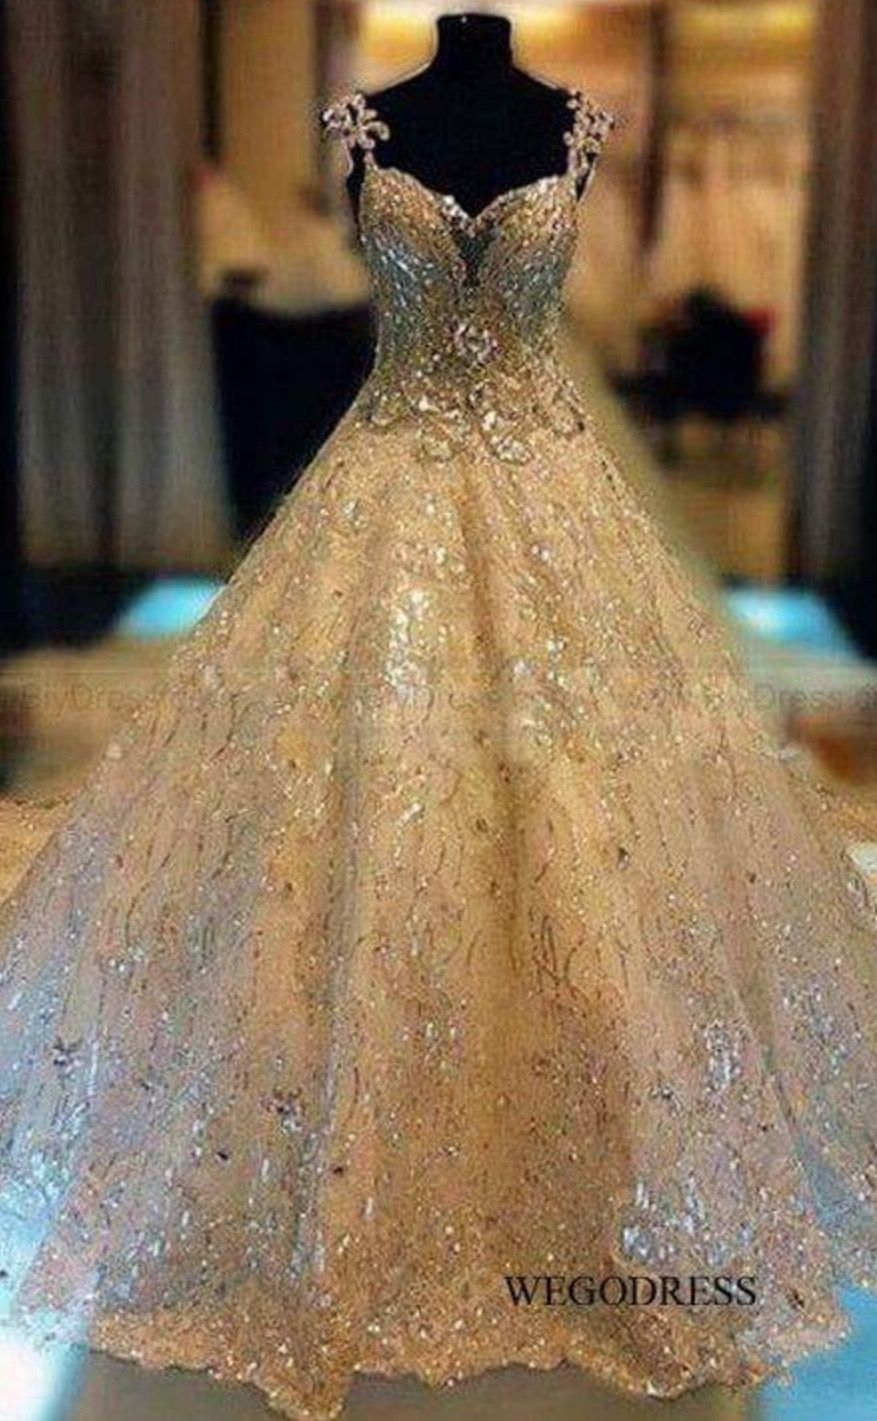 Daily dream home your private castle hotel in versailles kentucky - Explore Wedding Dress Sparkle Silver Party Dress And More